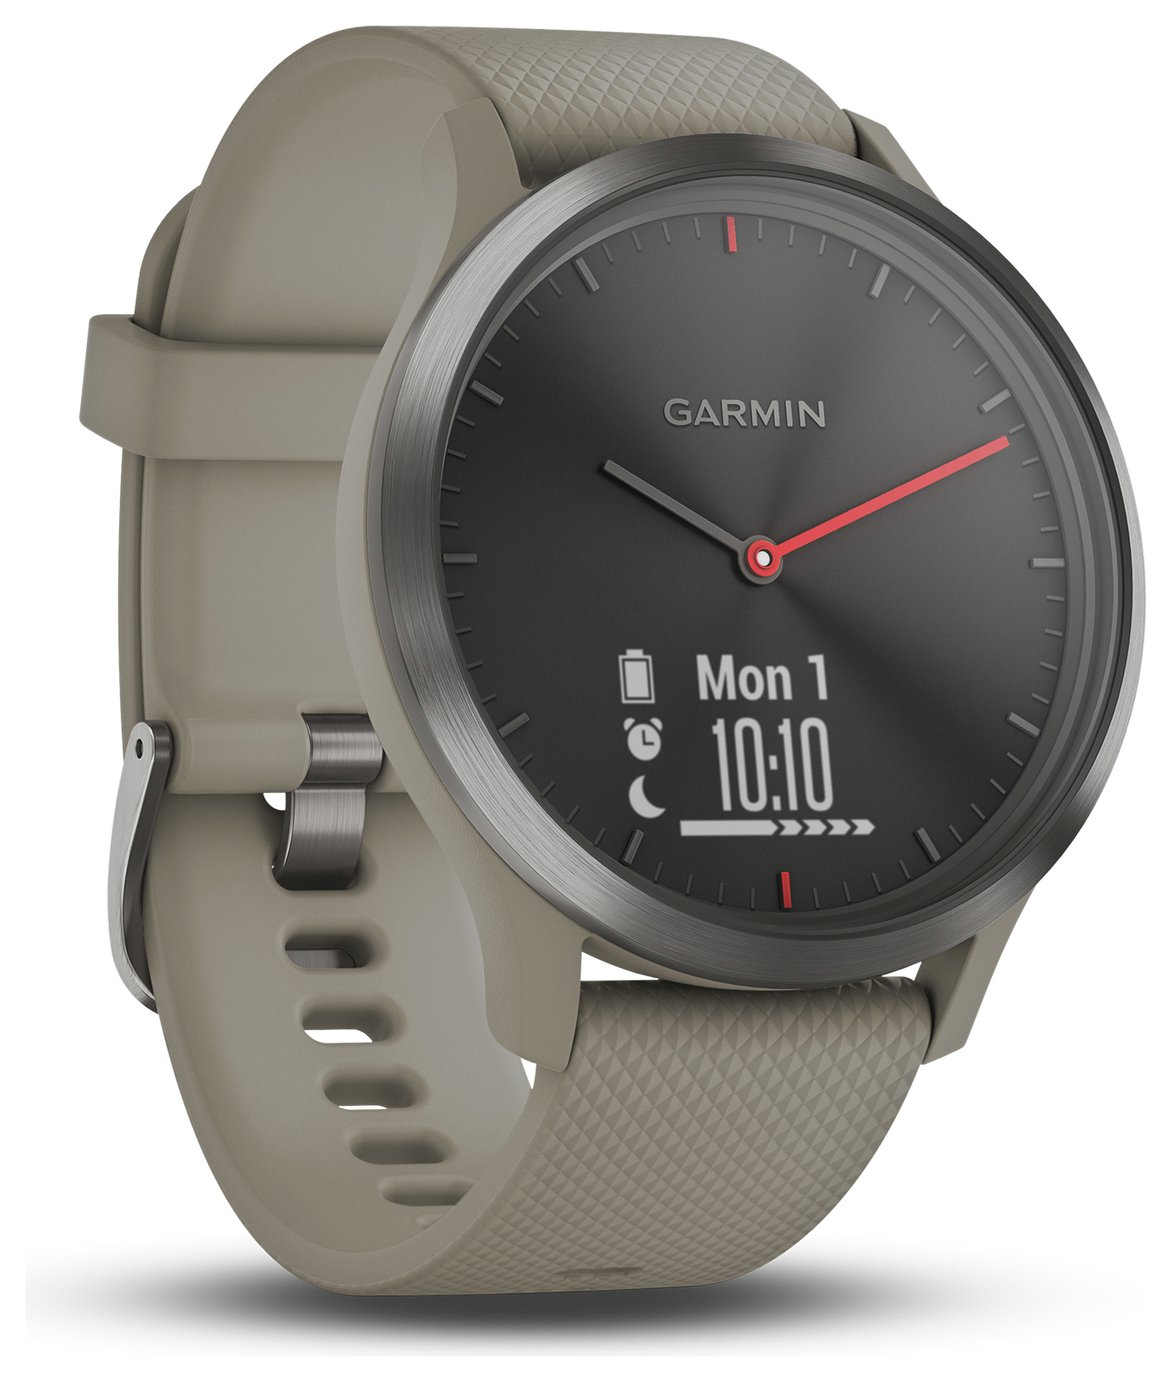 Garmin Vivomove HR Smart Watch - Black and Sandstone from garmin